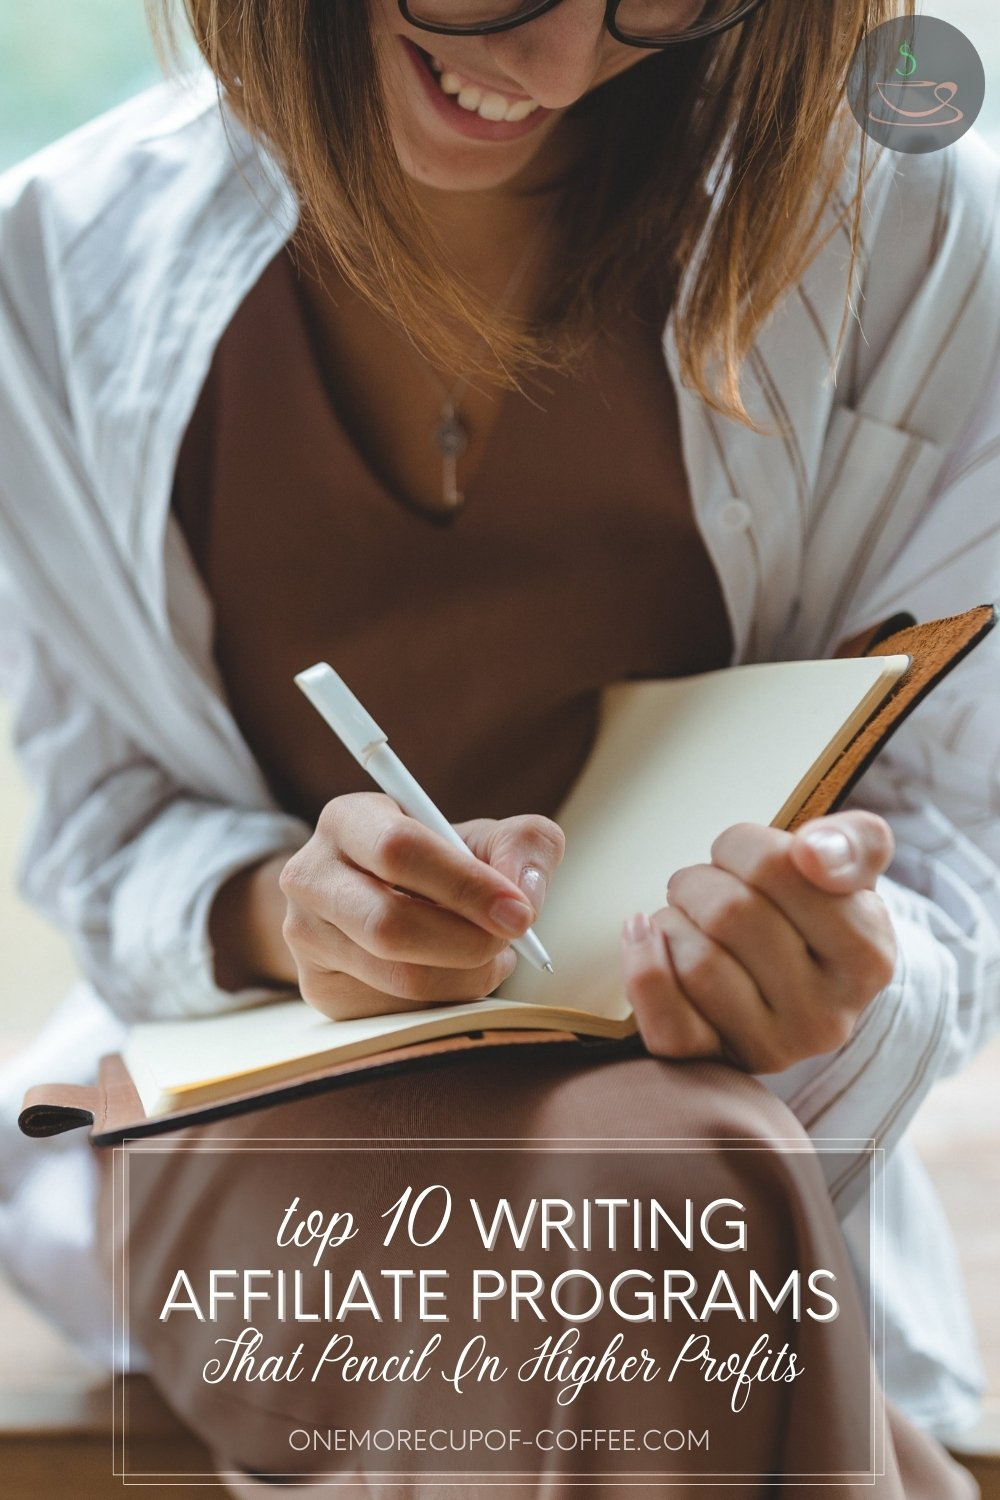 """partial image of a smiling woman in brown dress layered with striped white polo shirt, sitting cross-legged while holding a pen and notebook on her lap, with text overlay """"Top 10 Writing Affiliate Programs That Pencil In Higher Profits"""""""